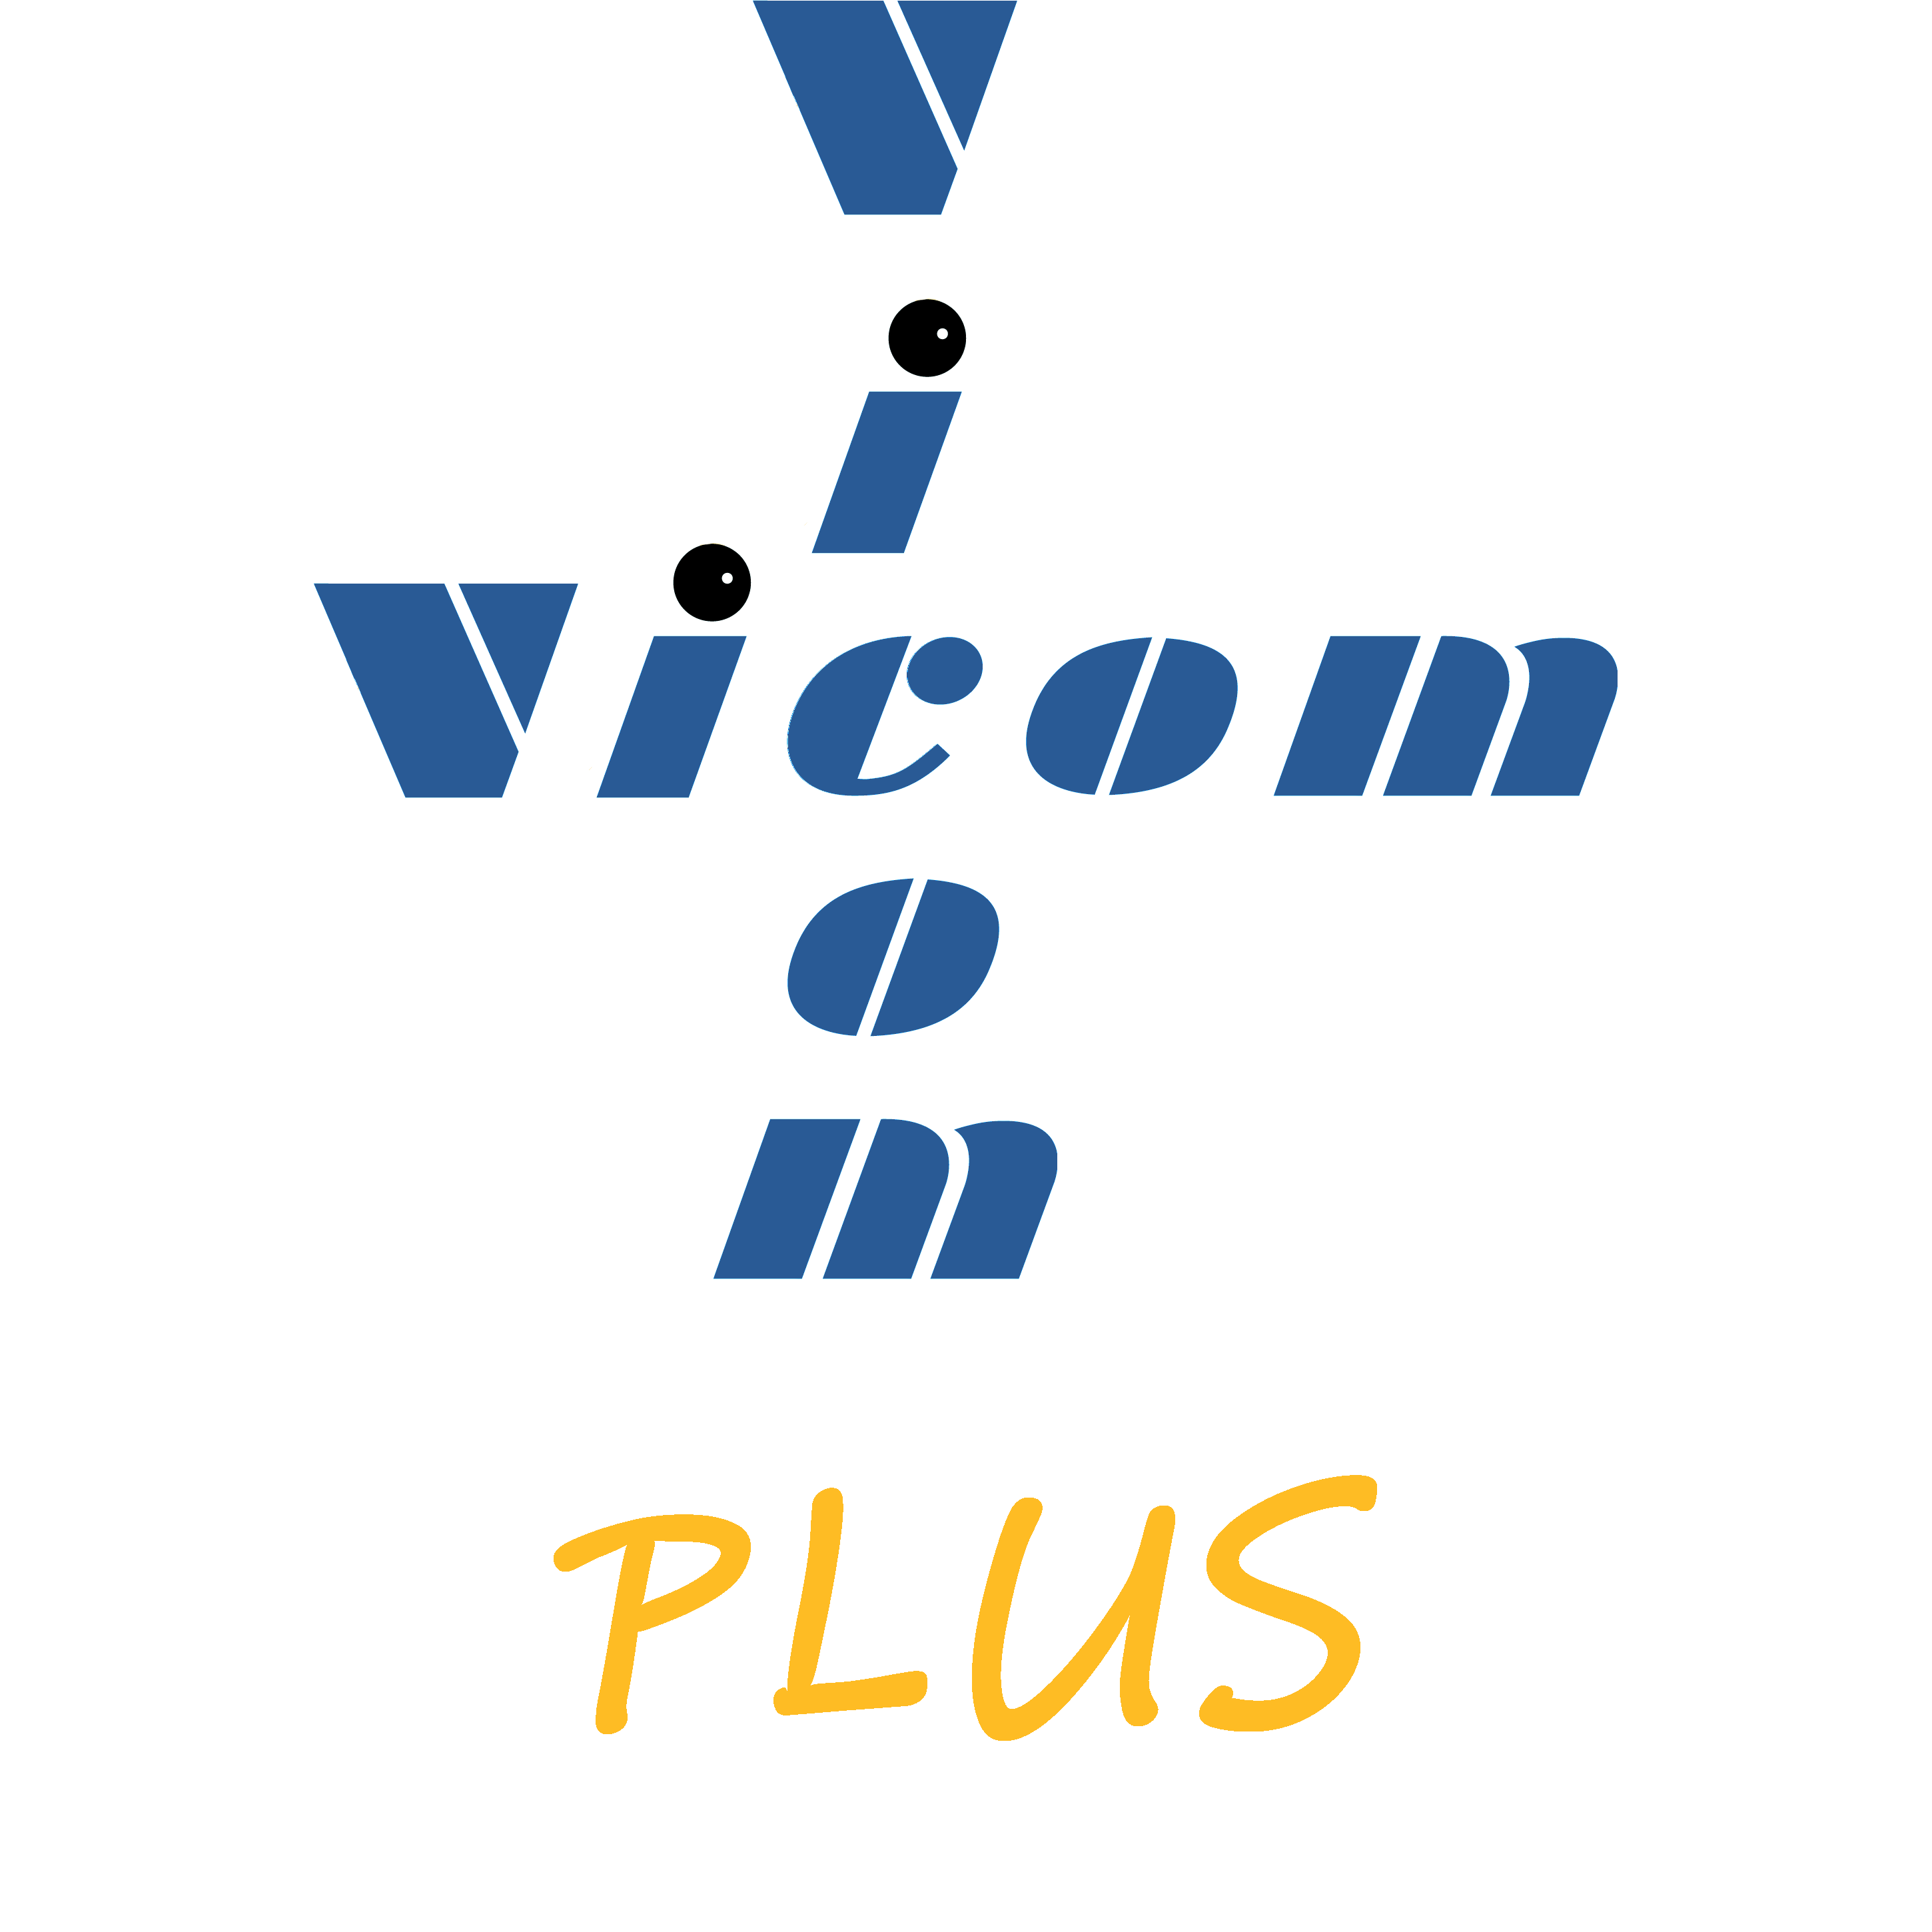 Services - Vicomplus